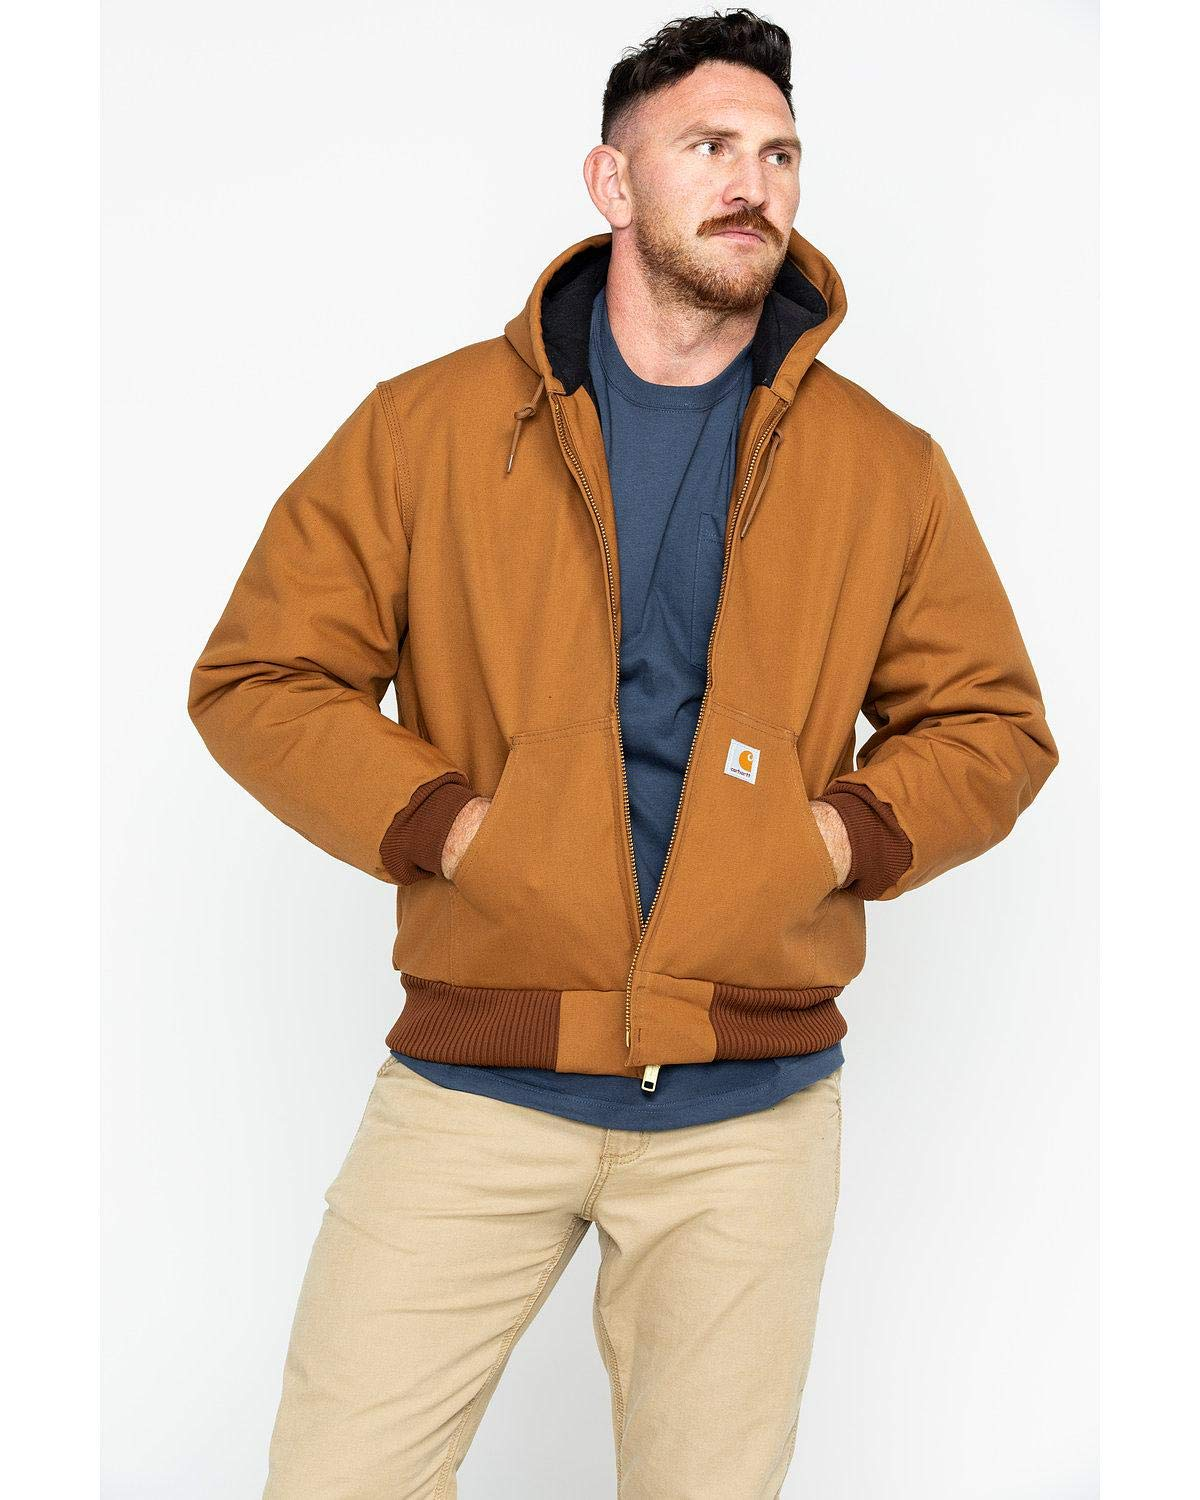 Carhartt Men's Quilted Flannel Lined Duck Active Jacket J140,Brown,Large by Carhartt